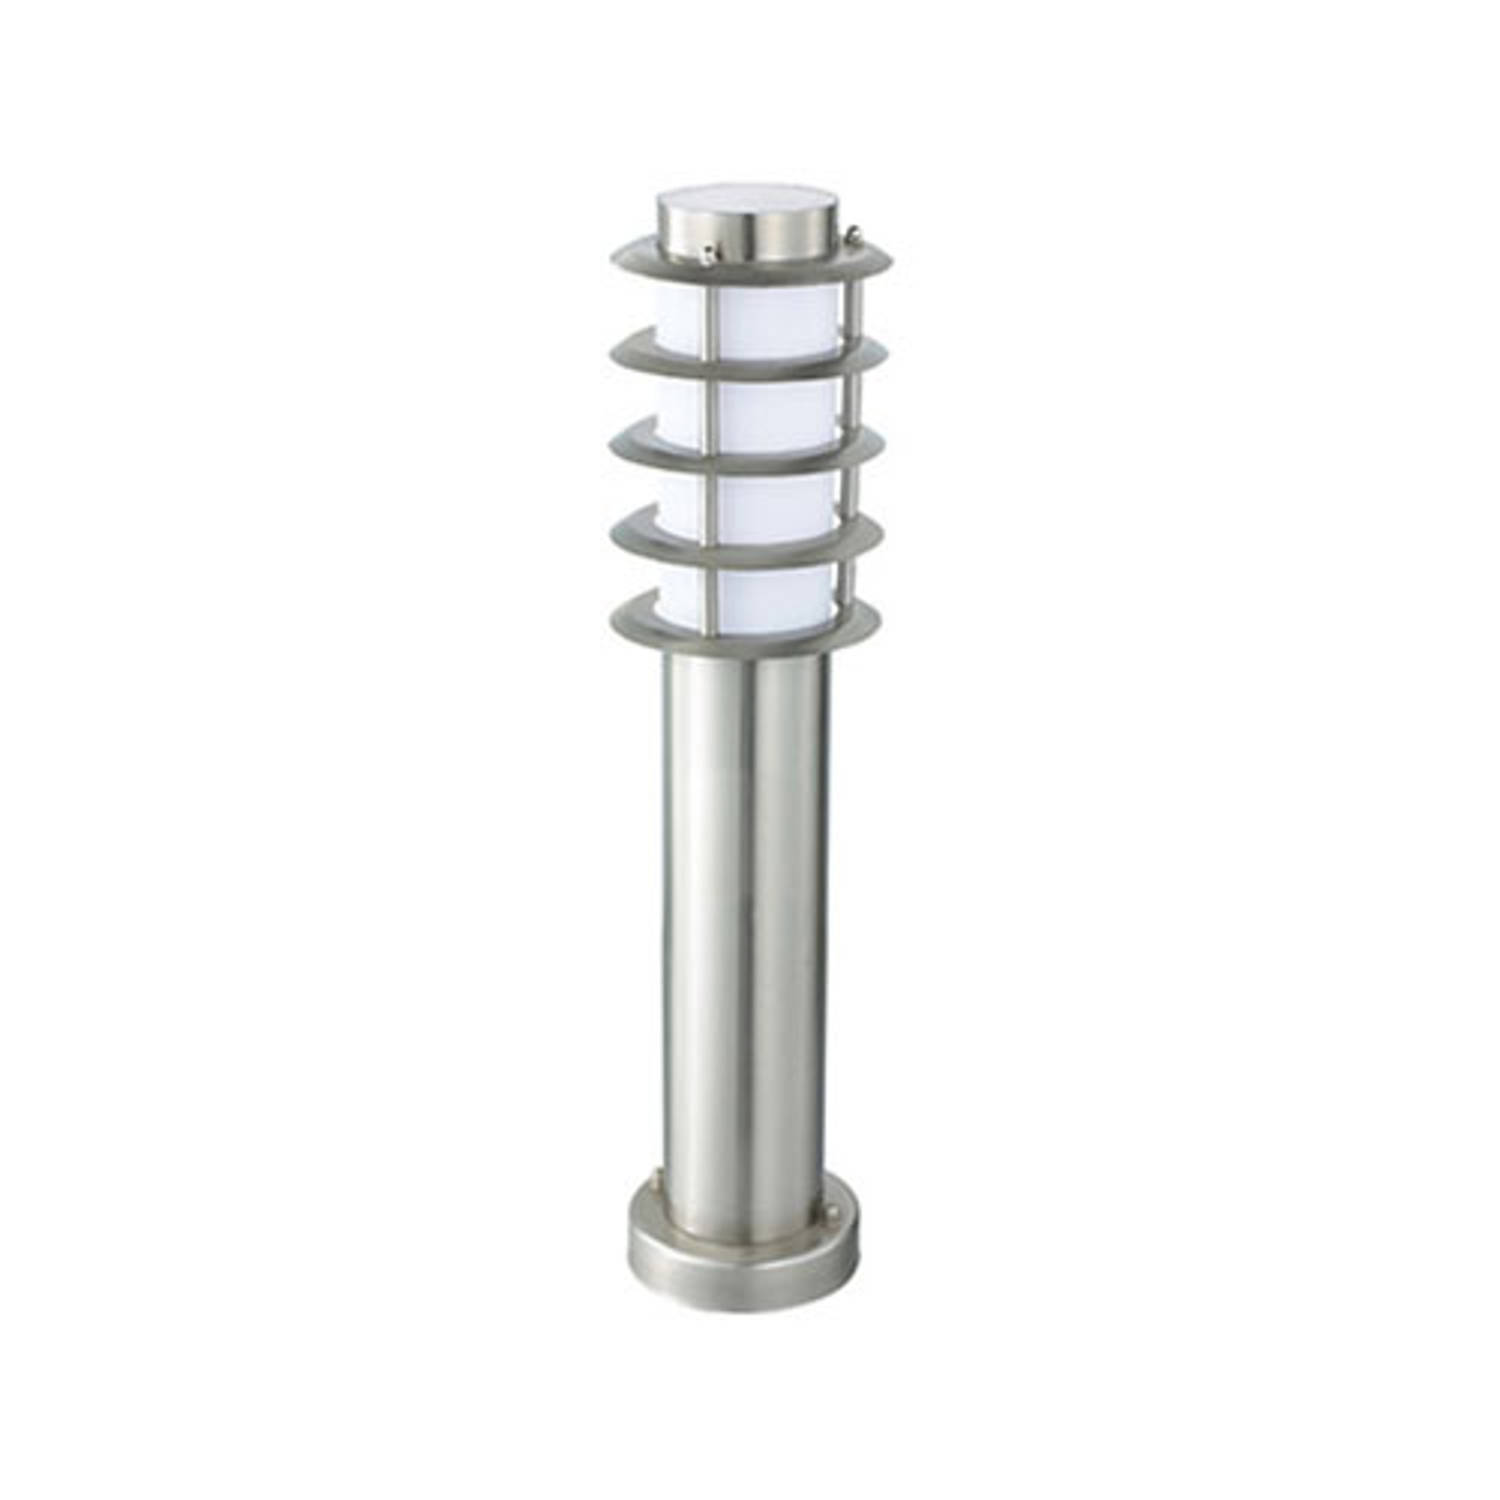 Led Tuinverlichting Buitenlamp Nalid 3 Staand Rvs E27 Rond